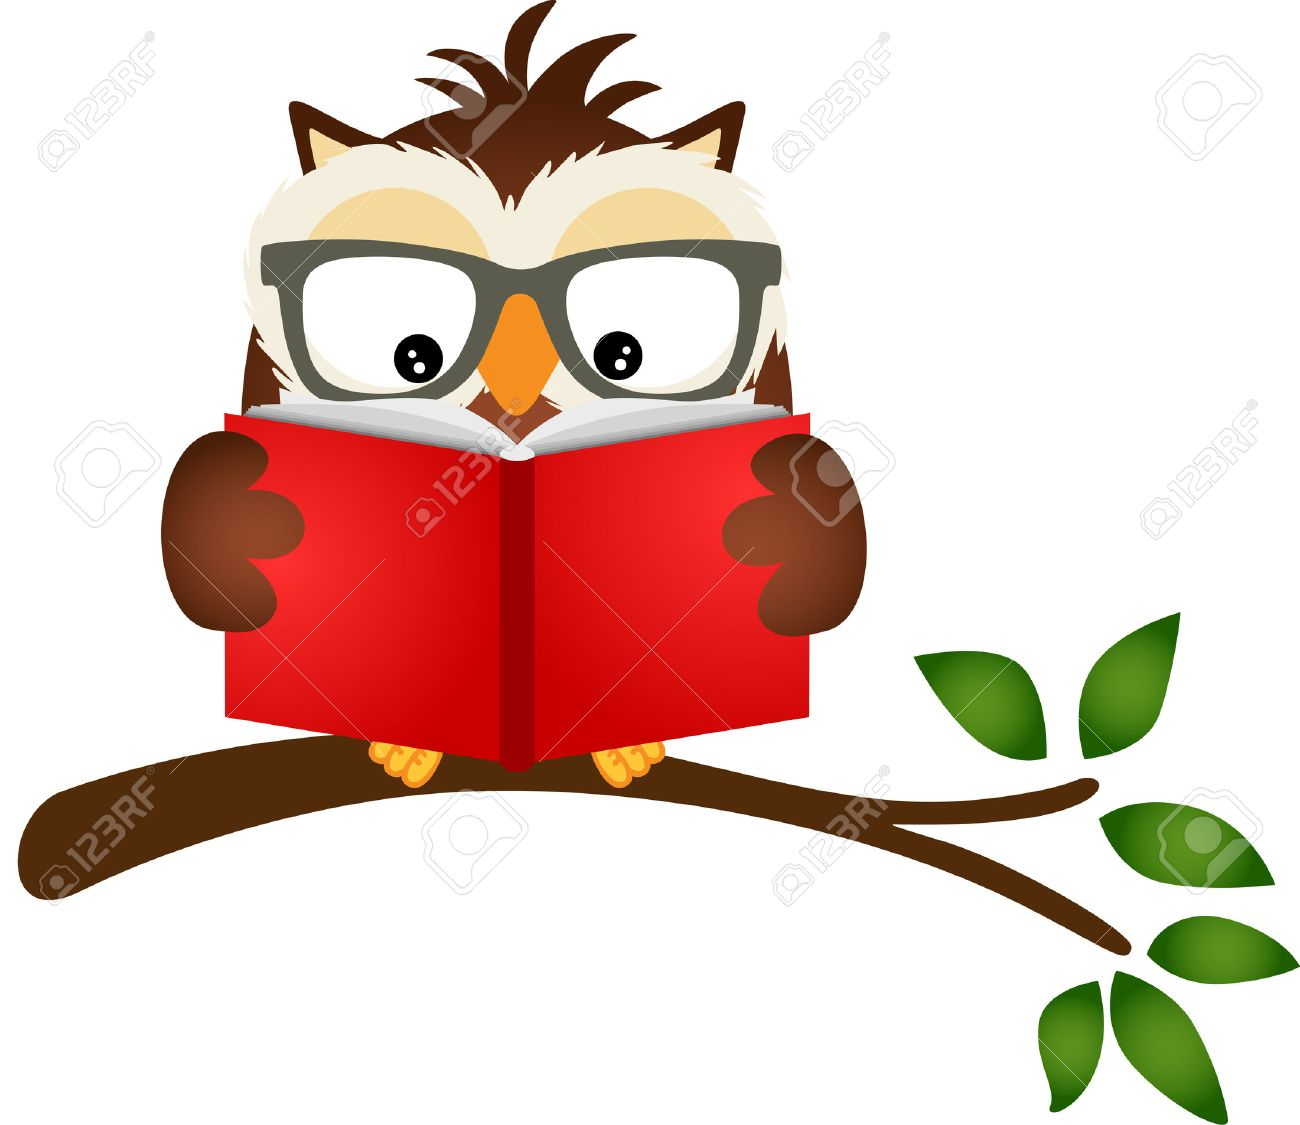 Image result for owls reading clipart